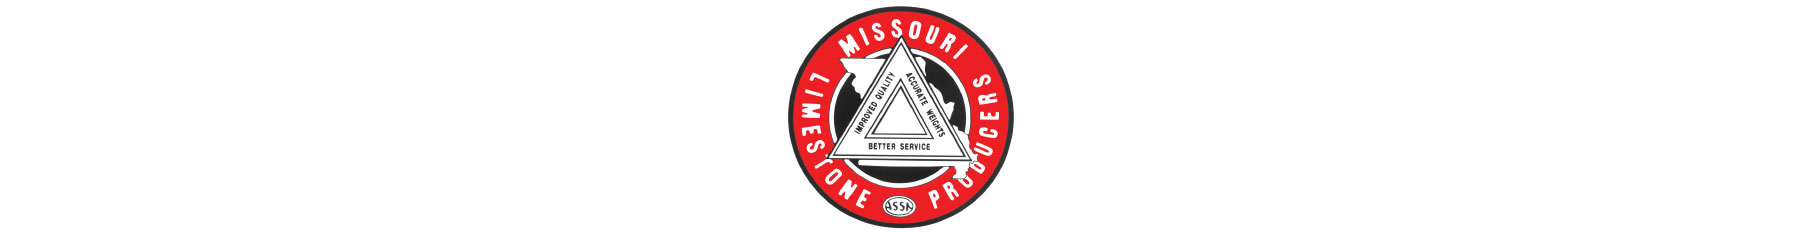 Missouri Limestone Producers Association